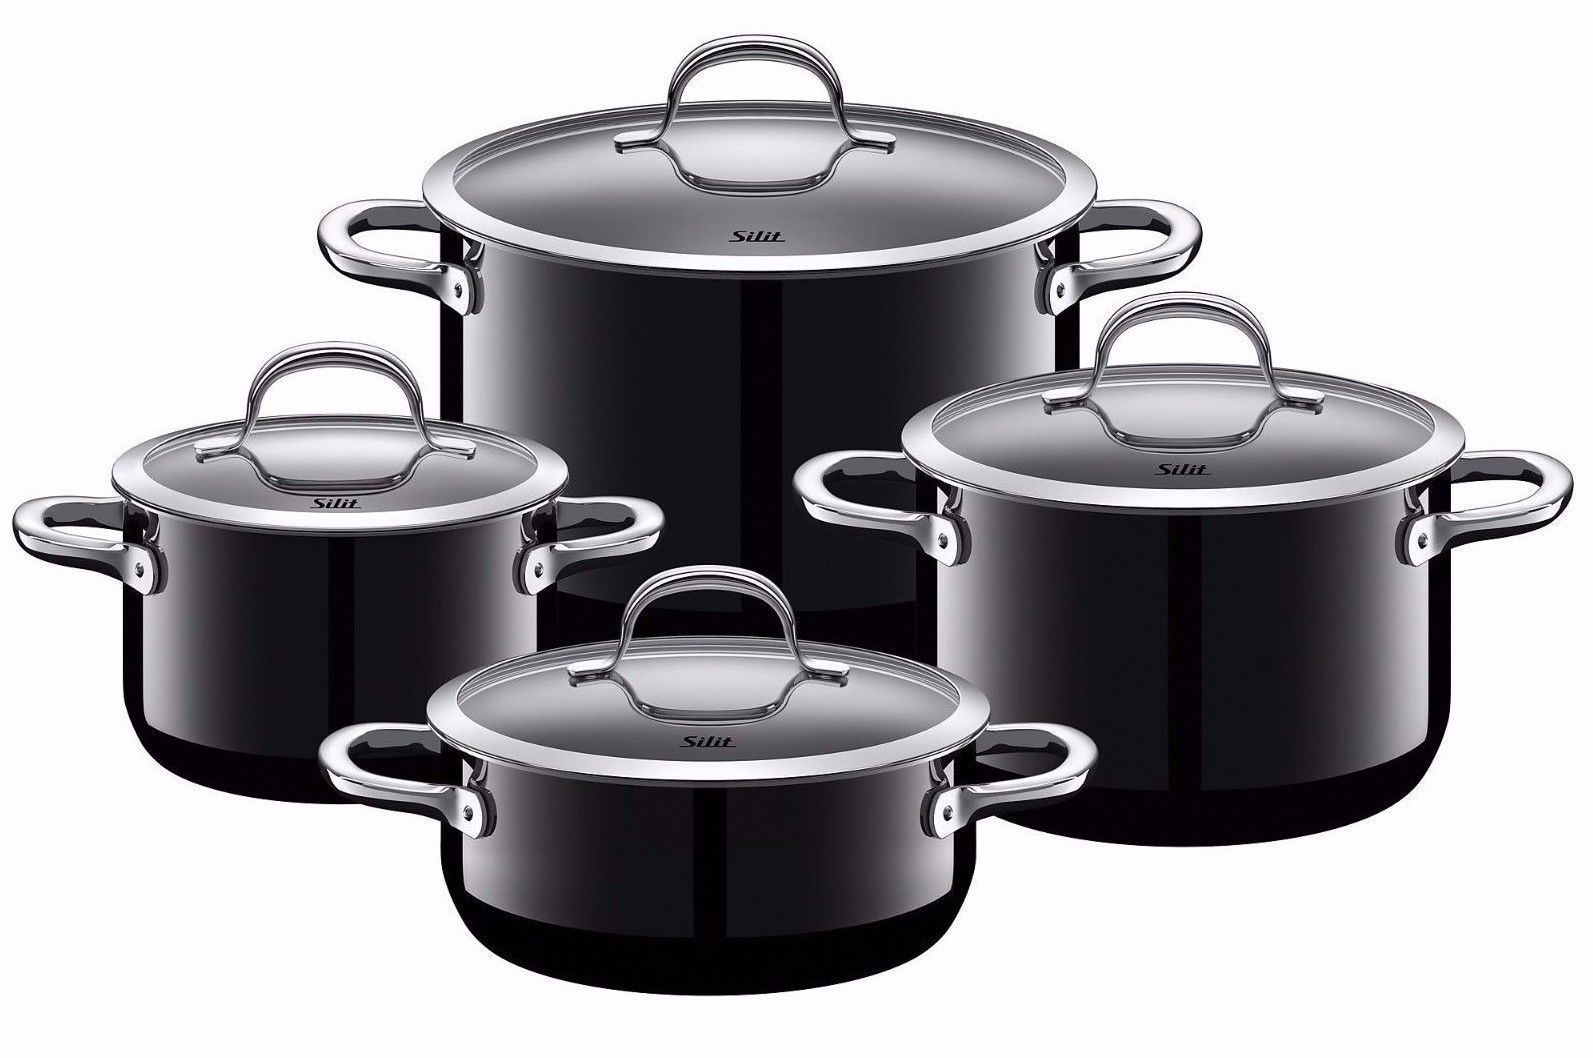 wmf silit passion 8 piece cookware set black made in germany cookers steamers. Black Bedroom Furniture Sets. Home Design Ideas